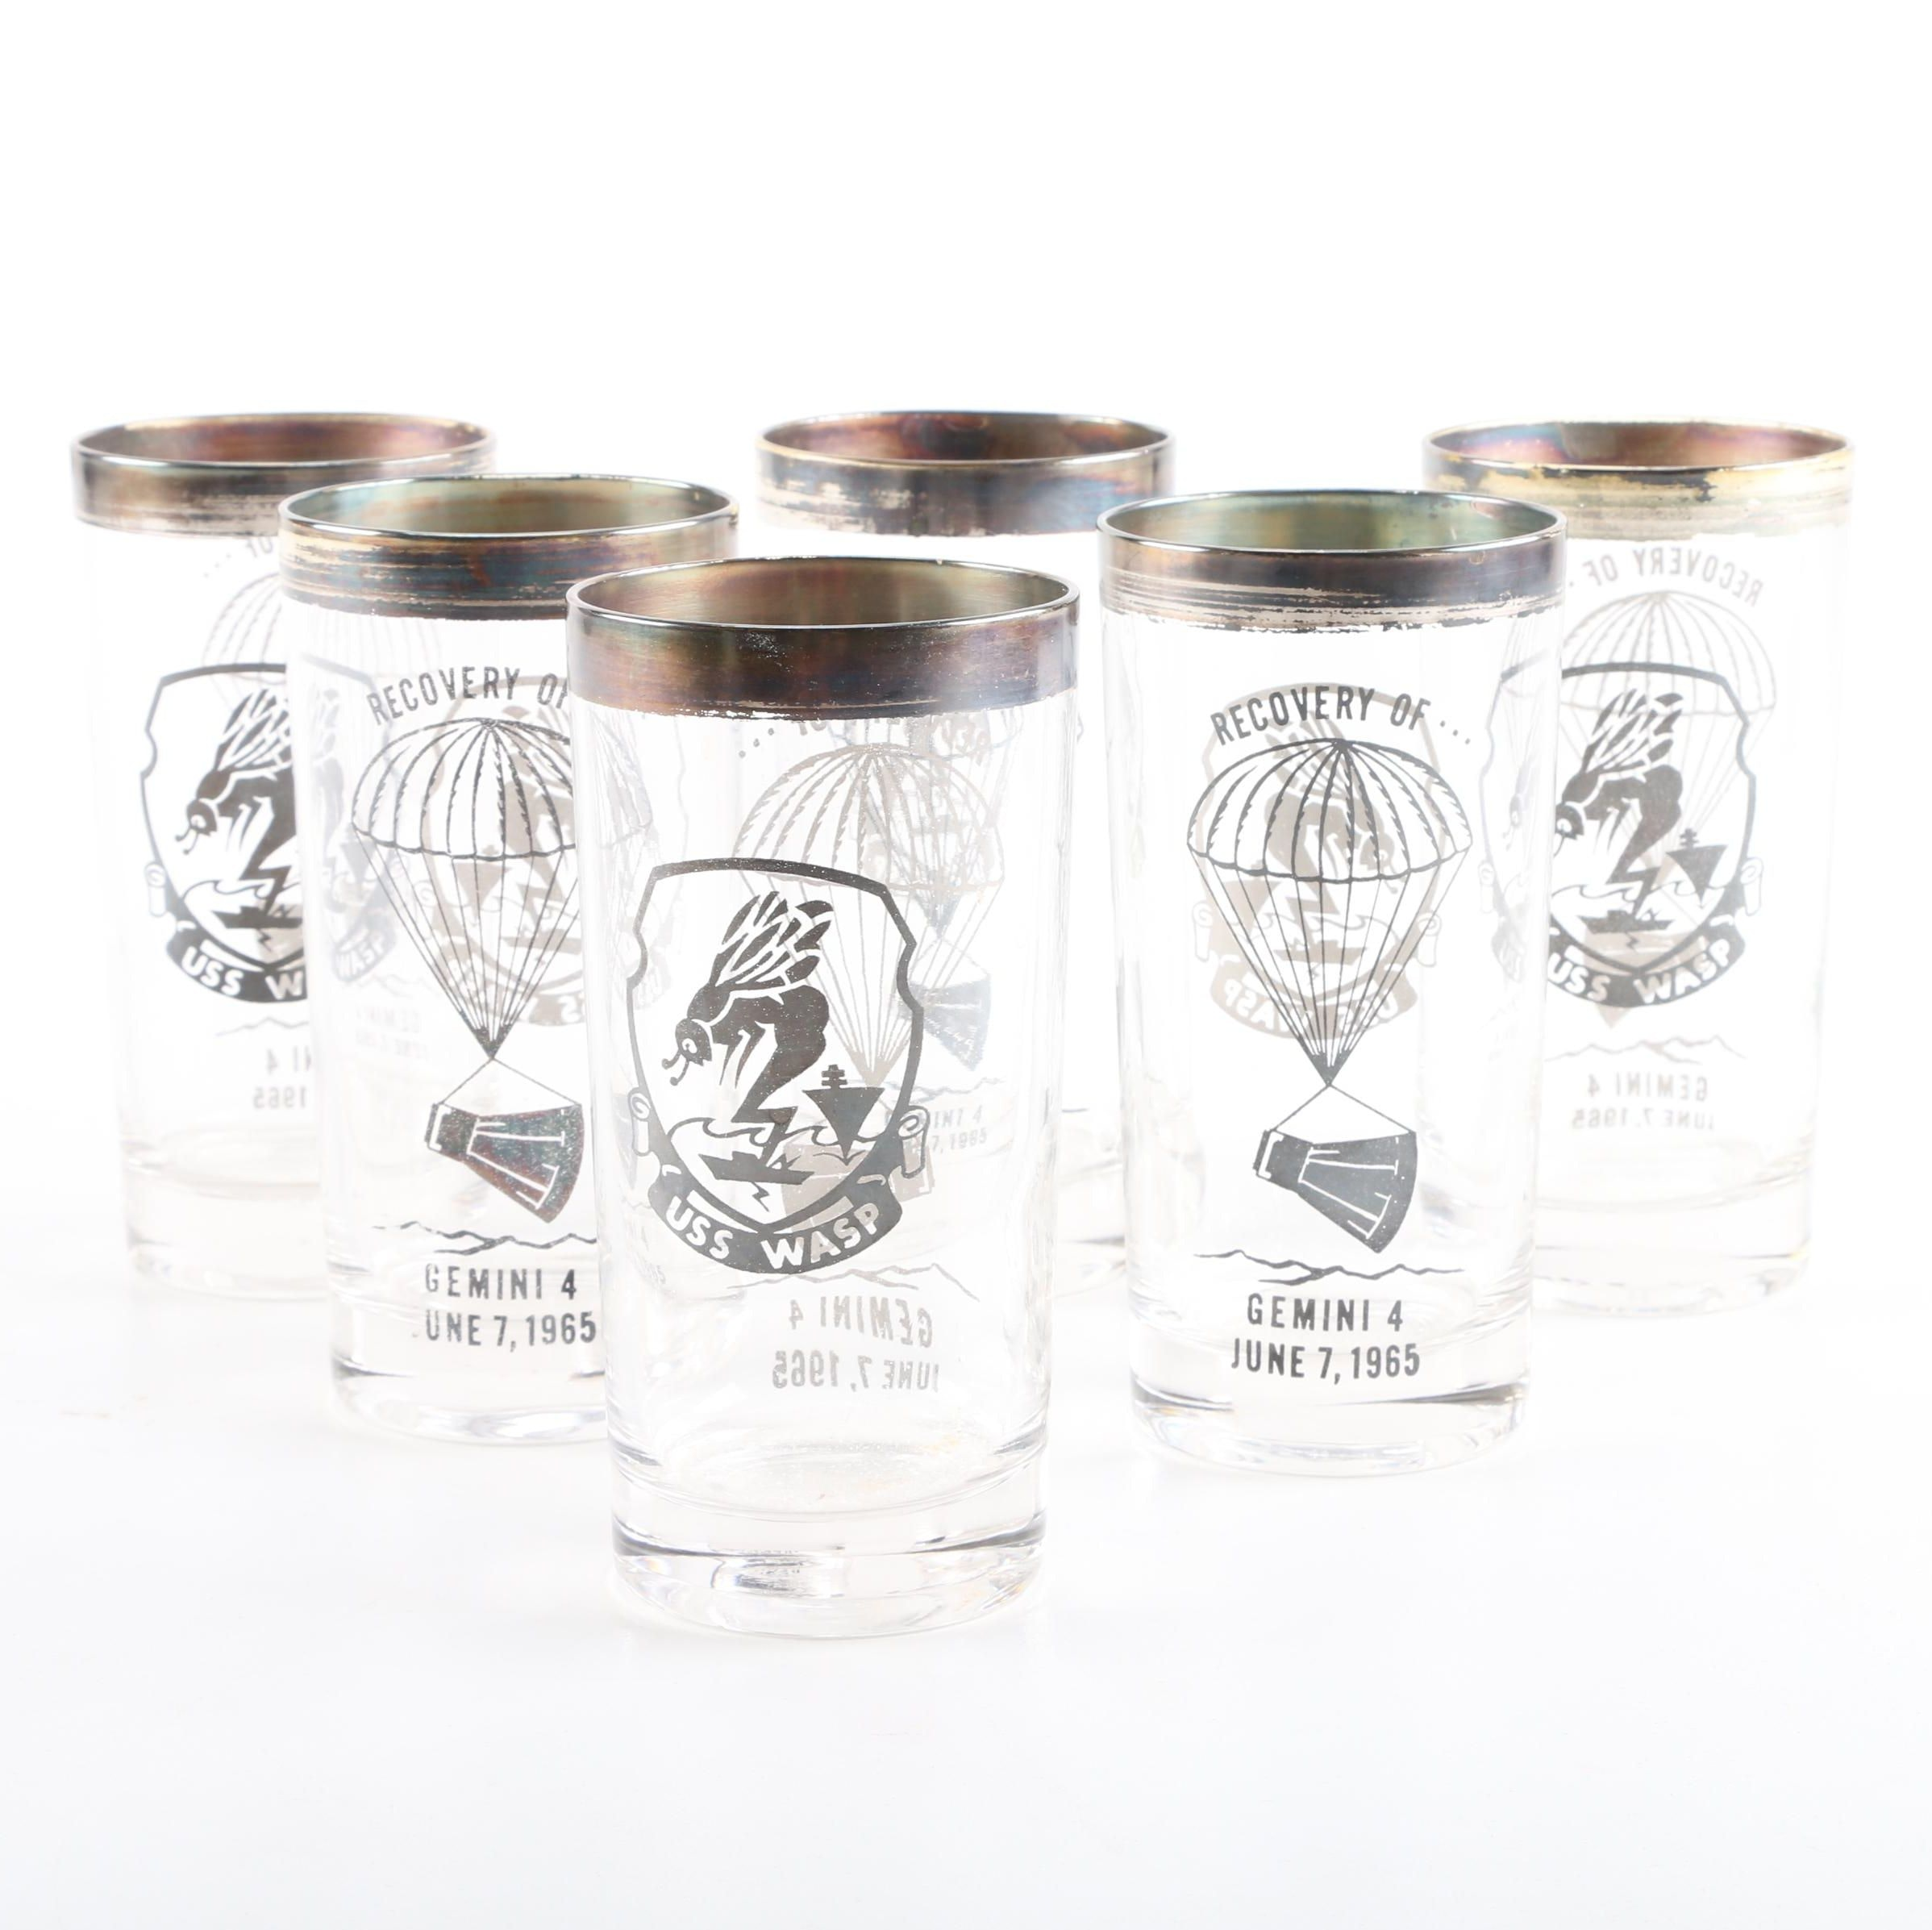 1965 USS Wasp Recovery of Gemini IV Commemortive Drinking Glasses